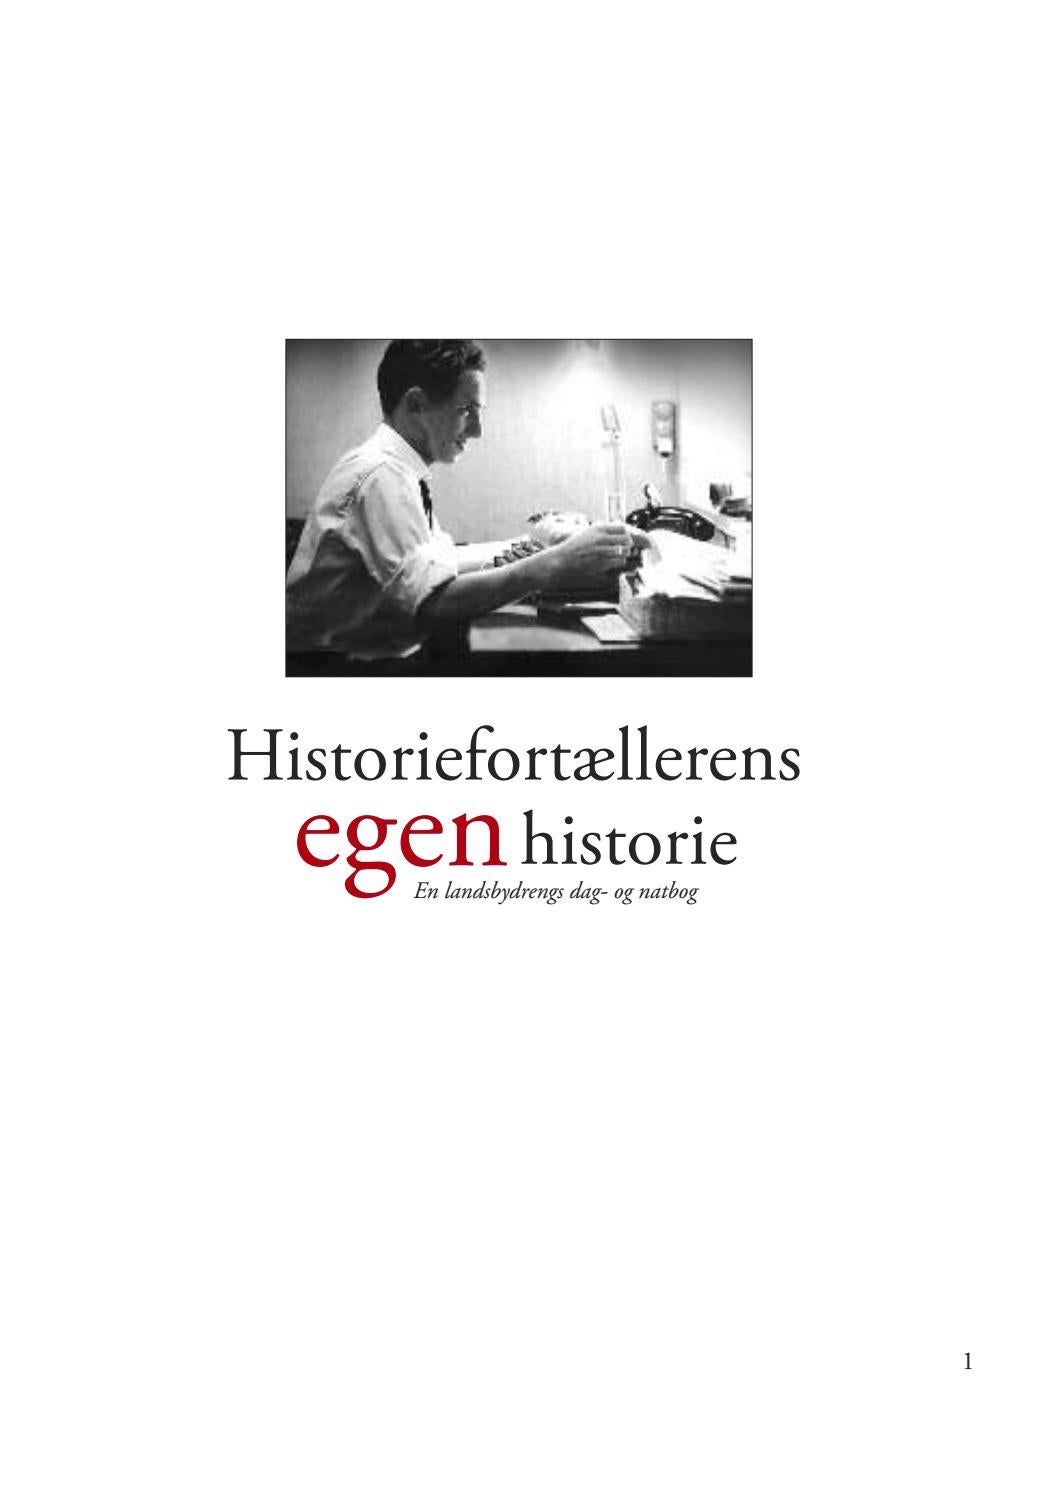 579899df3f9d Min egen historie by Bekker Media - issuu